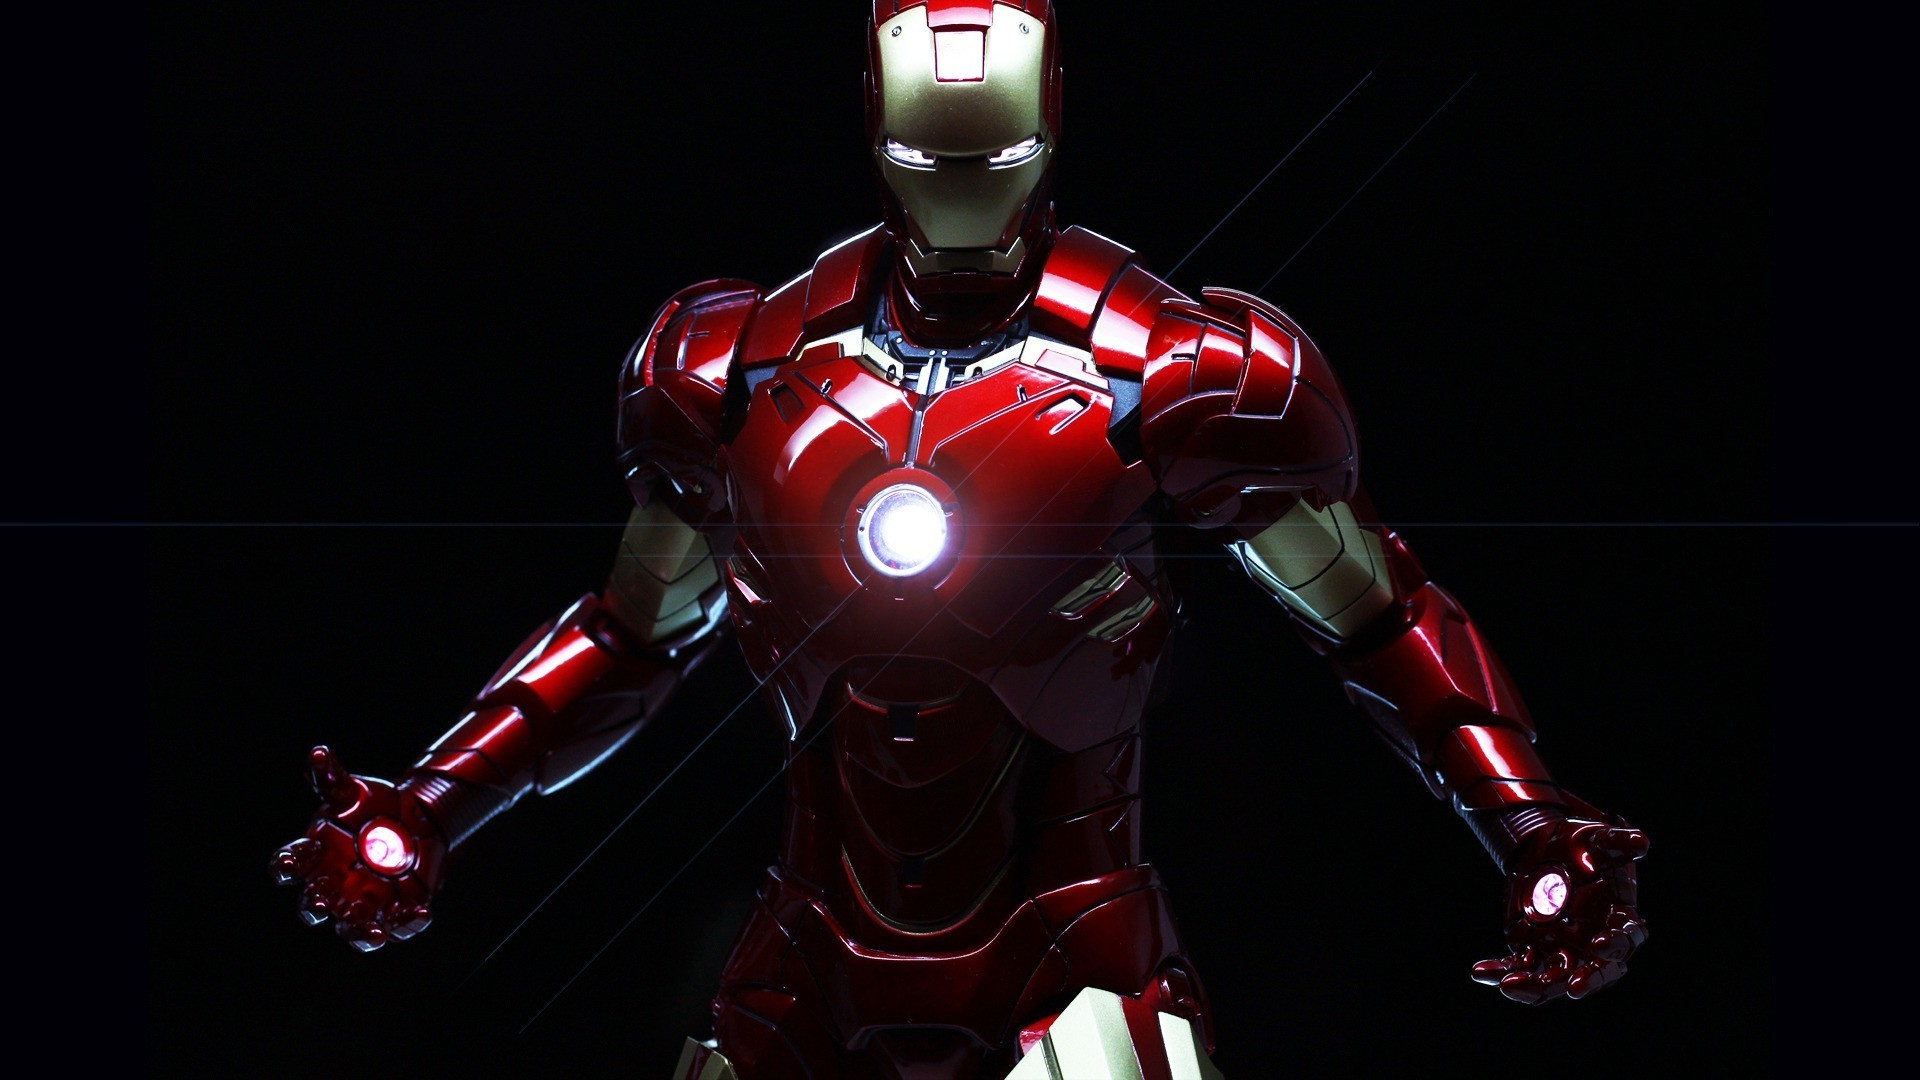 35 Iron Man HD Wallpapers for Desktop   Page 3 of 3 1920x1080